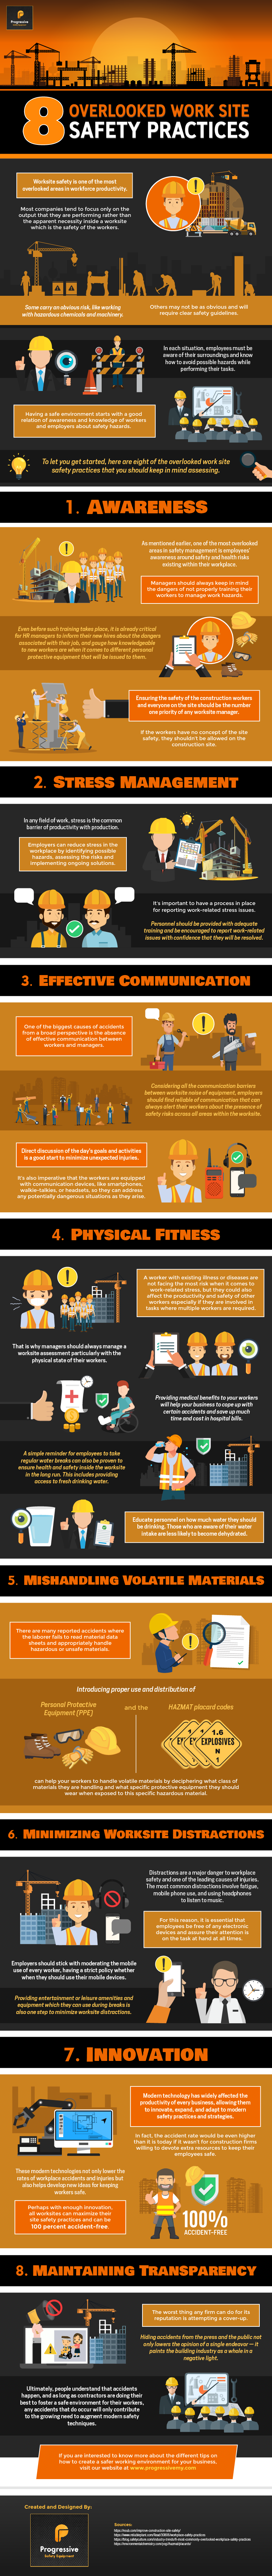 8 Overlooked Work Site Safety Practices - Infographic